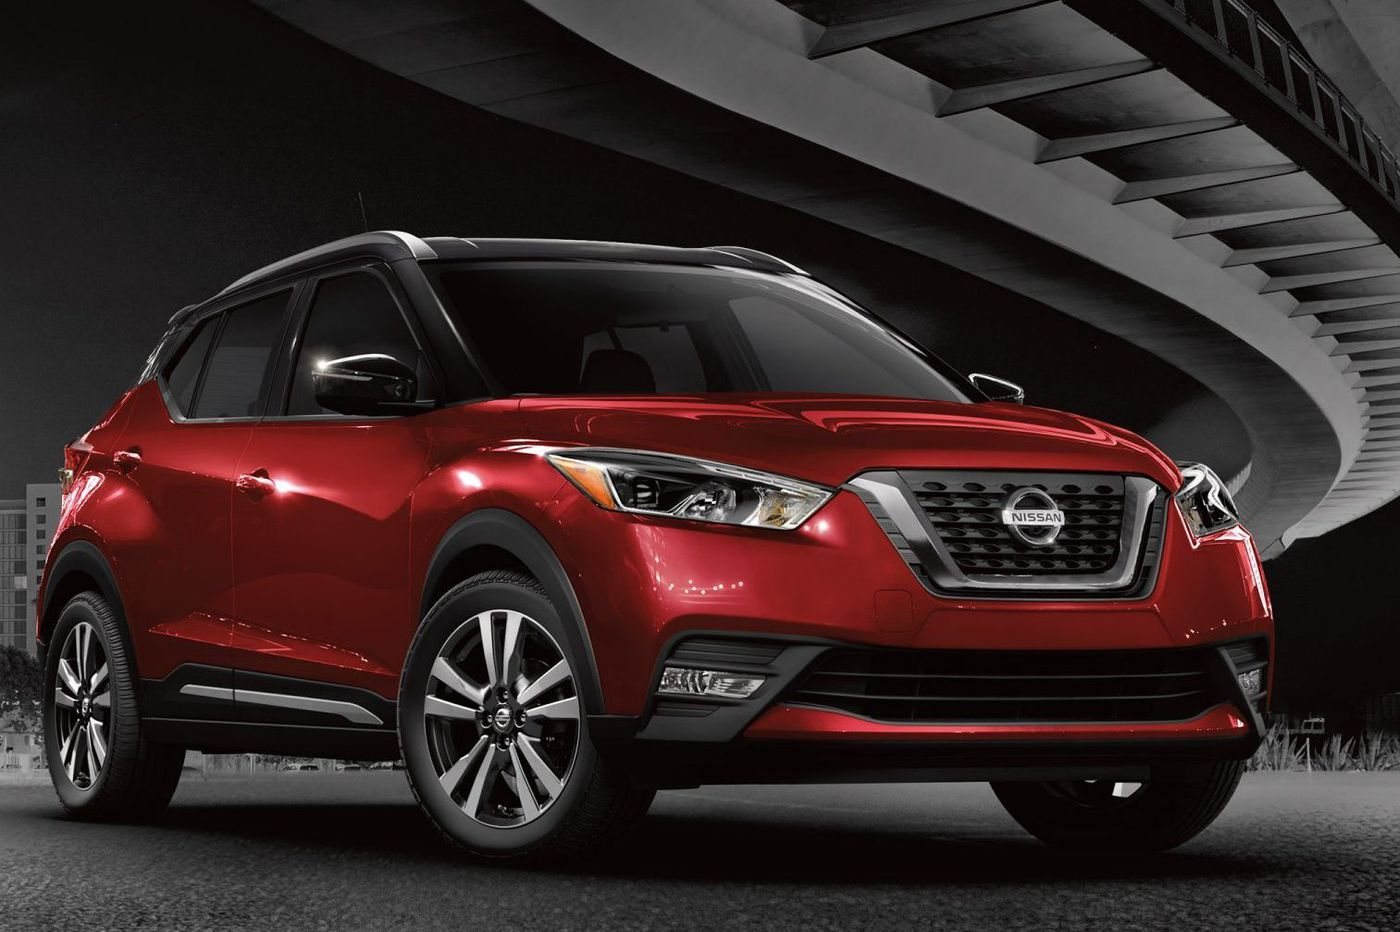 Nissan's Kicks is a cute, useful hatchback, not a crossover